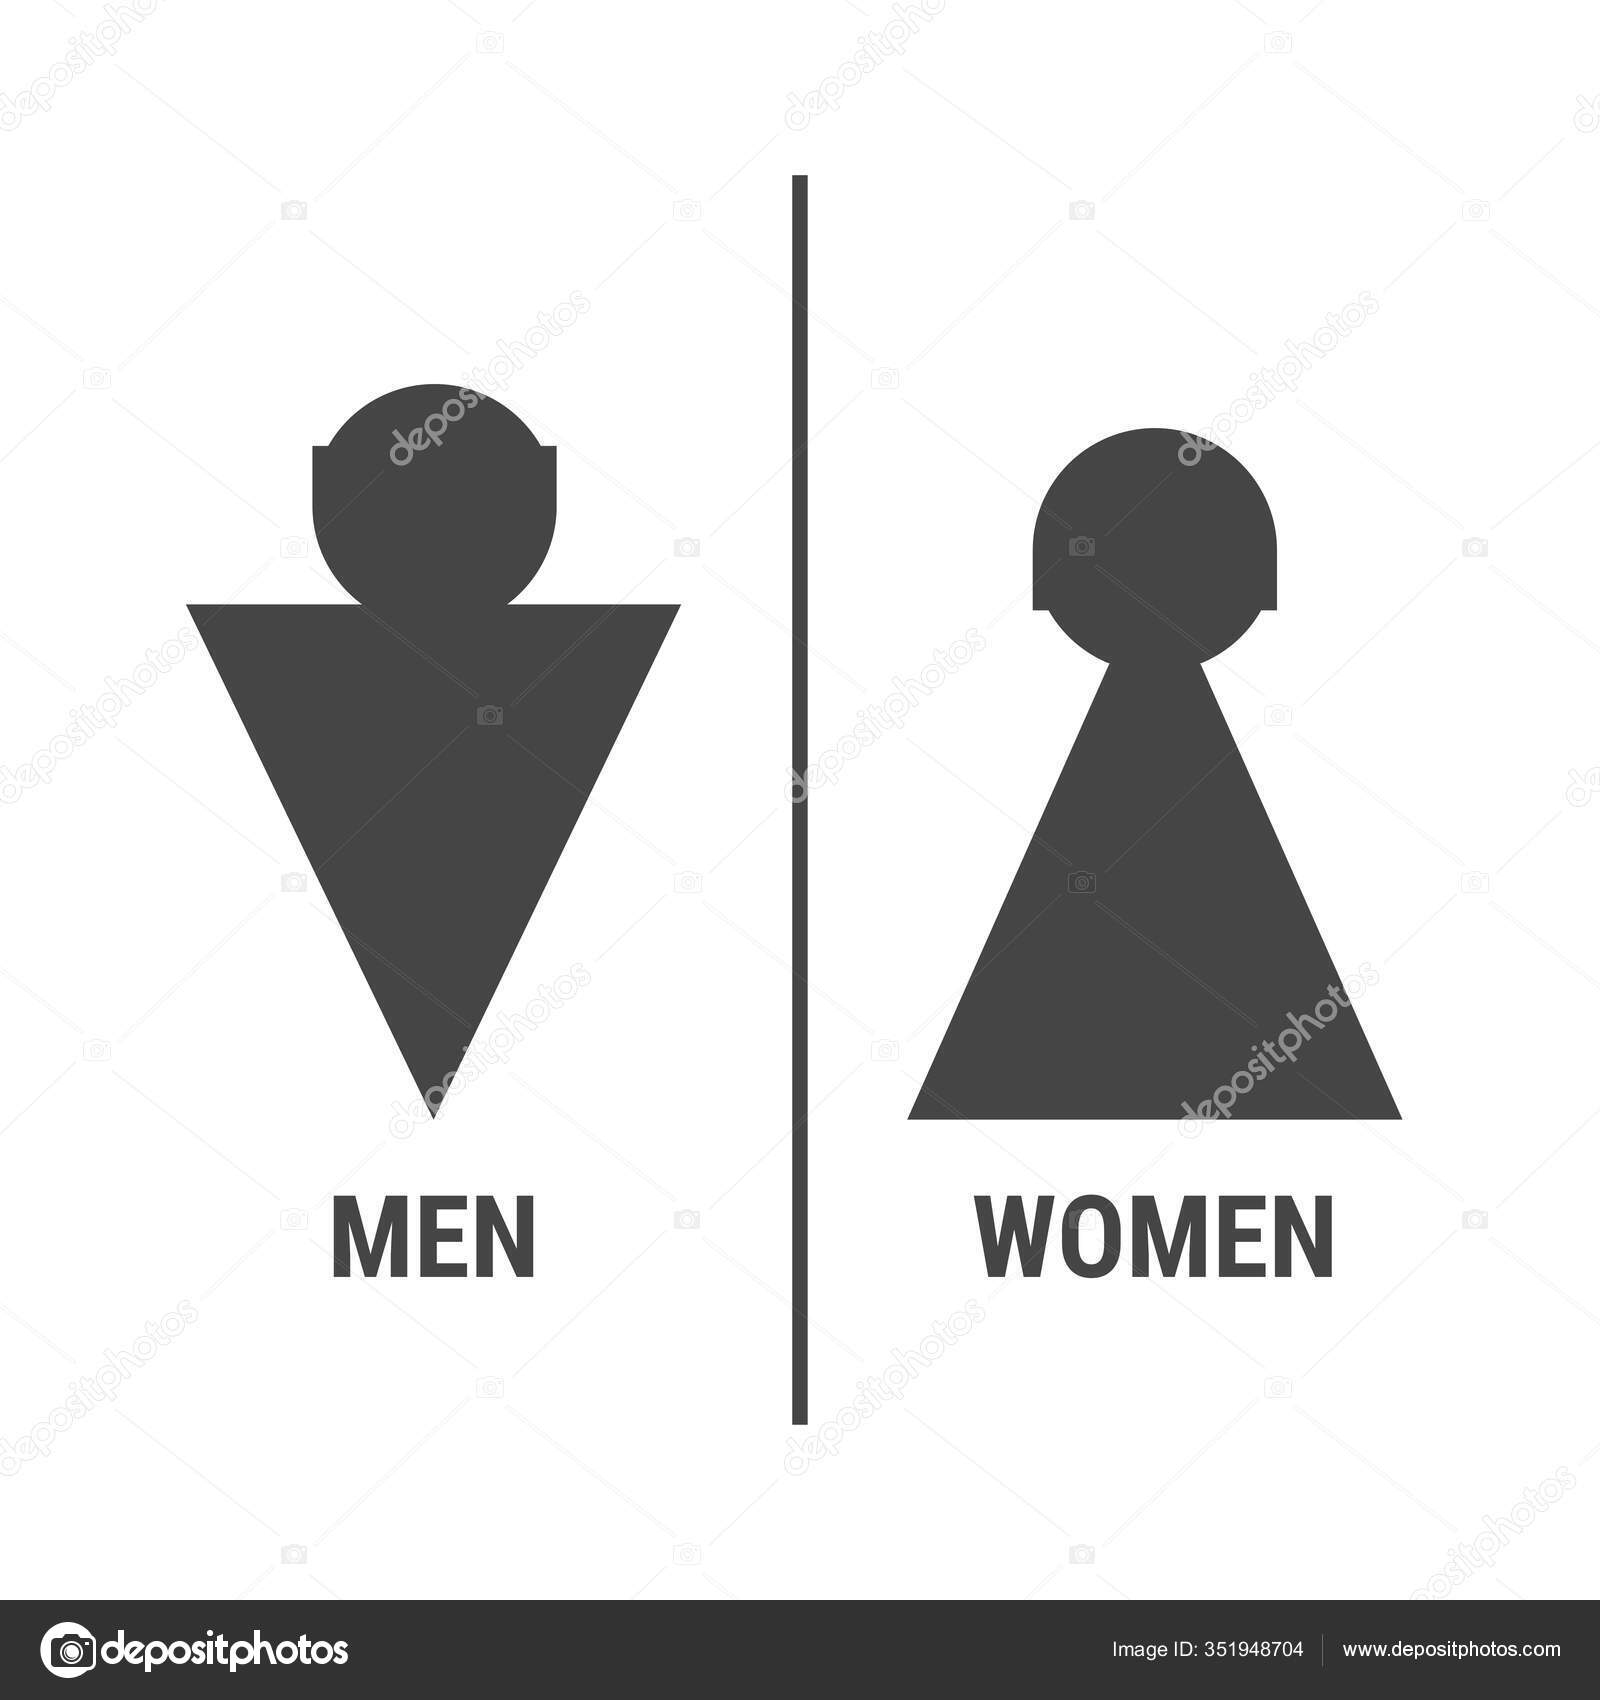 silhouette toilet sign vector illustration triangular man woman sign stock vector c ivanburchak 351948704 depositphotos